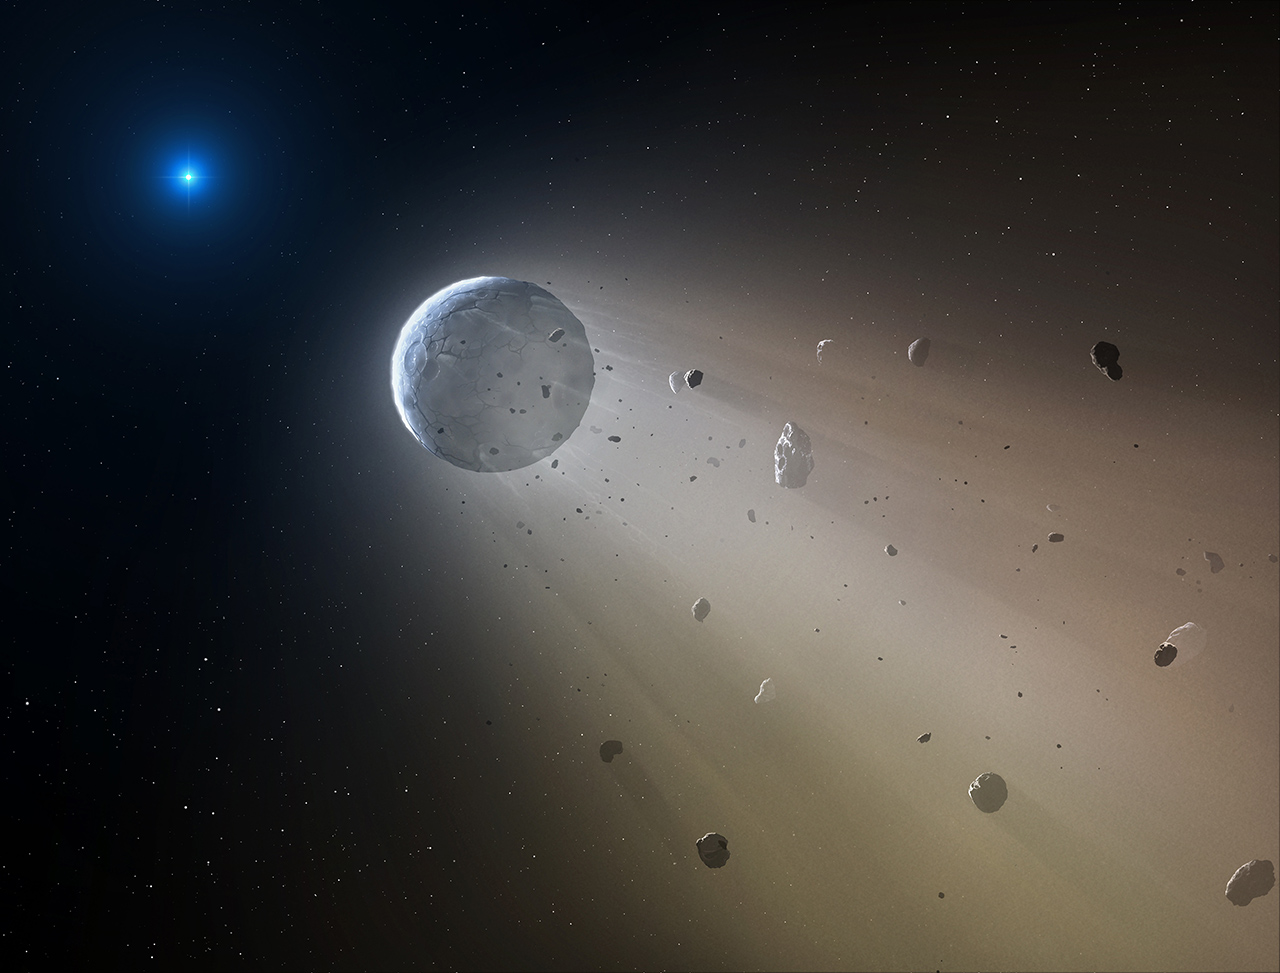 In this artist's conception, a tiny rocky object vaporizes as it orbits a white dwarf star. Image Credit: CfA/Mark A. Garlick